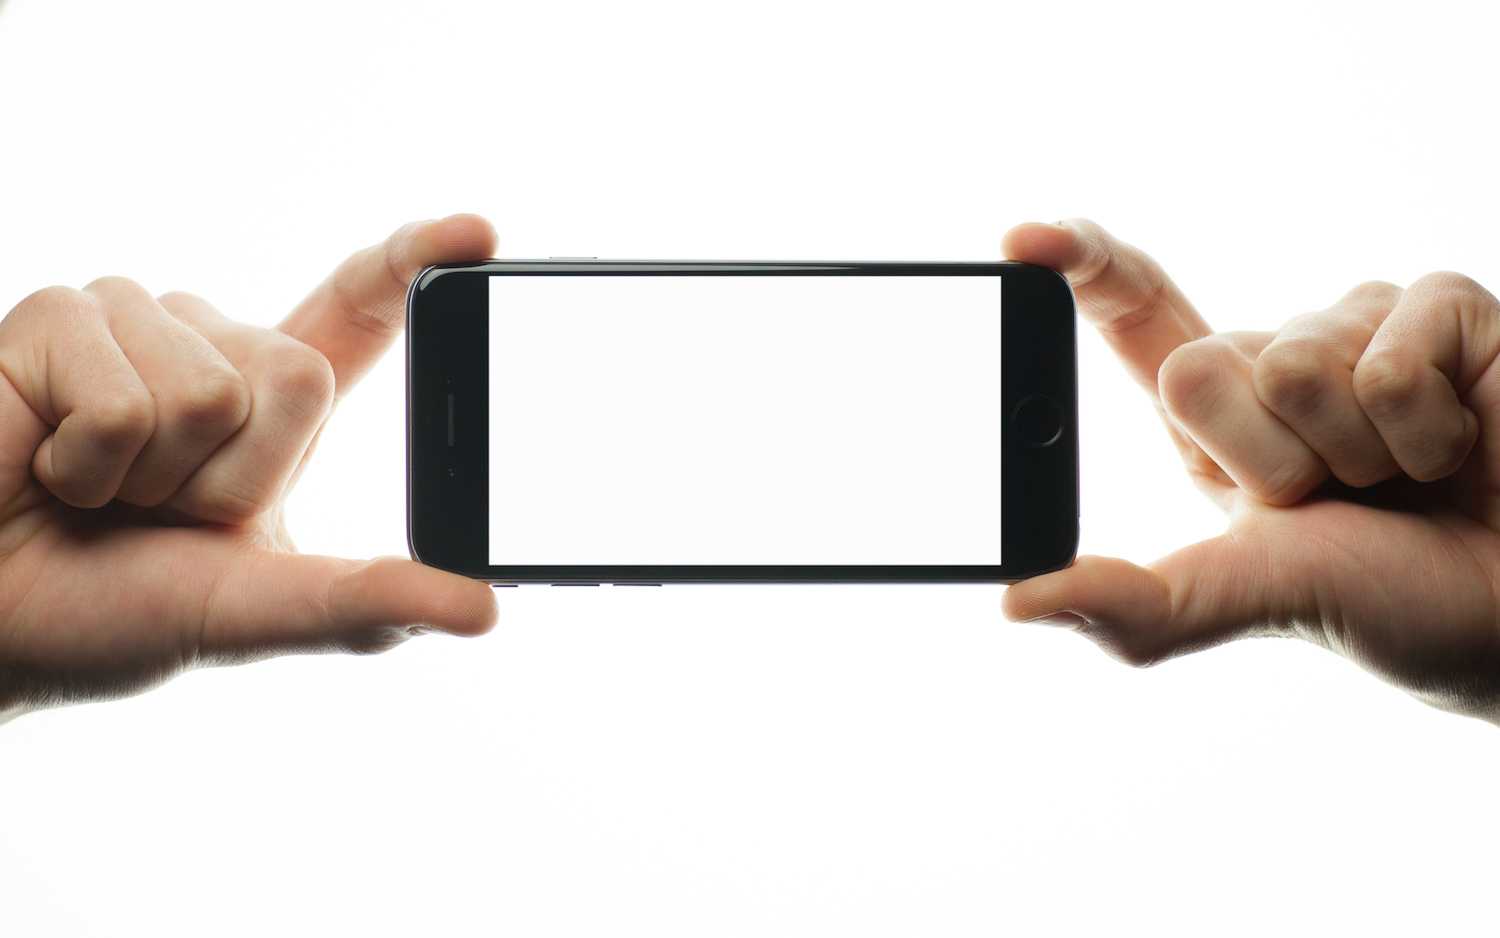 Two hands holding smartphone with blank screen  example image 1